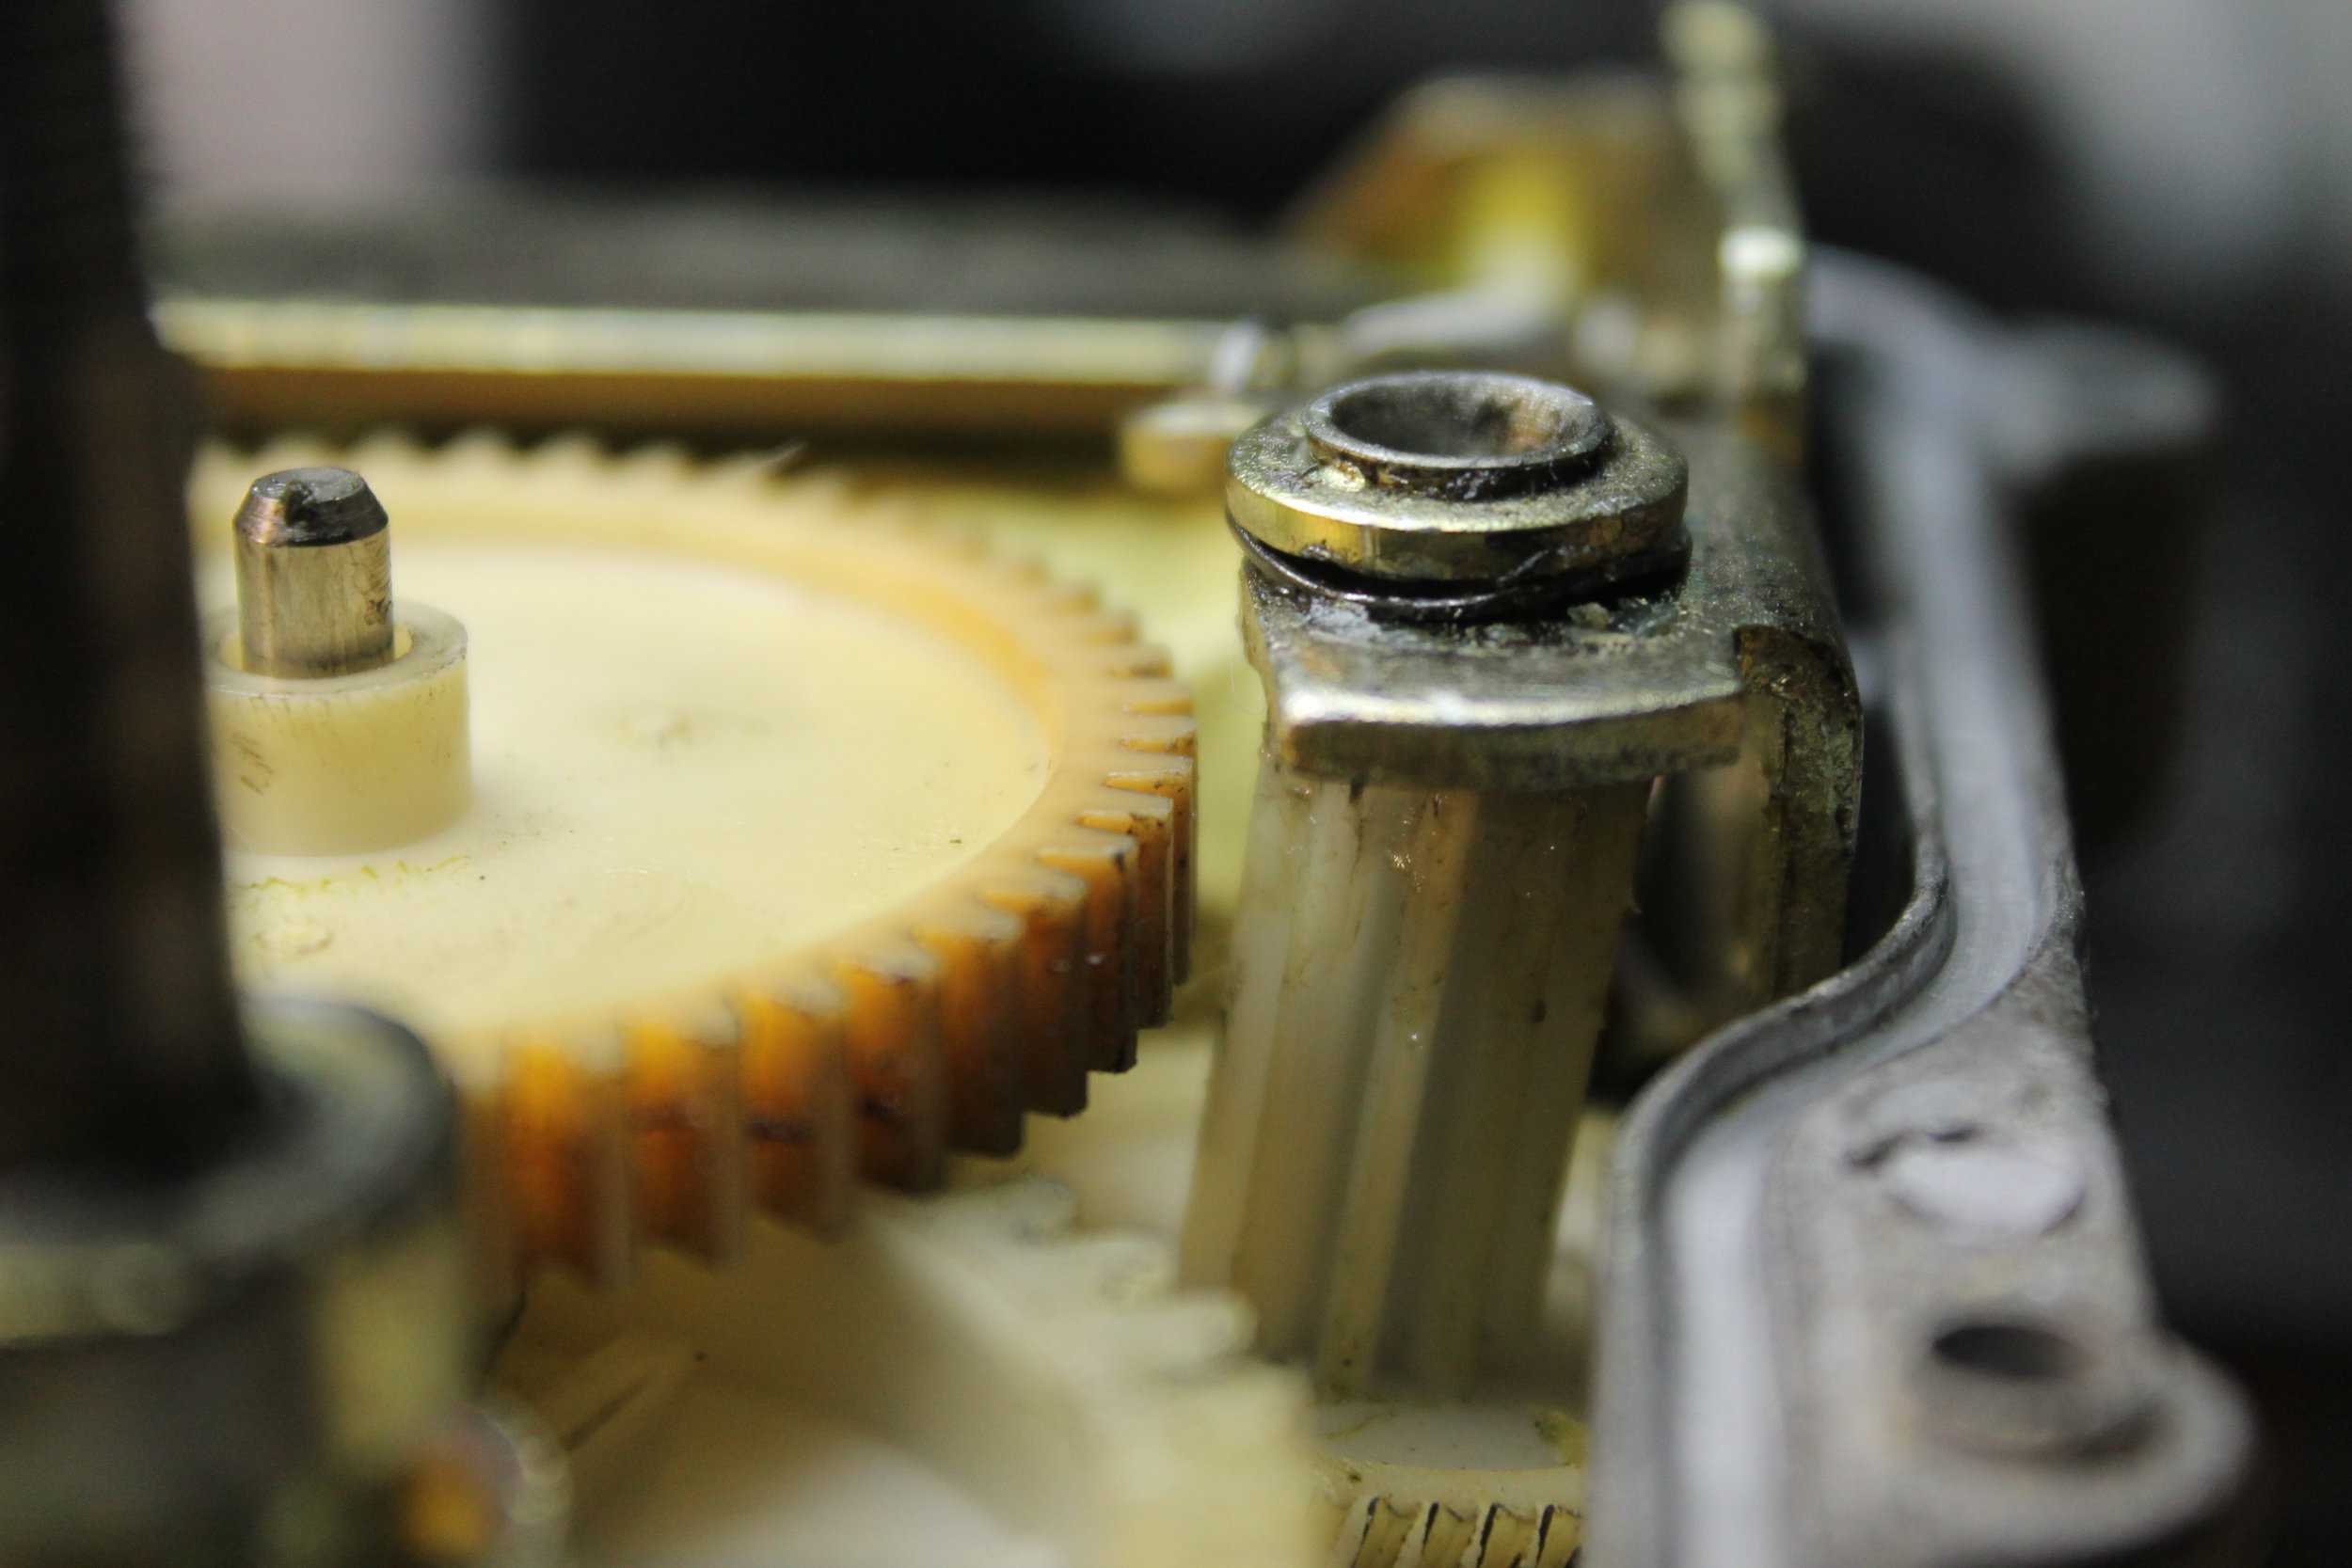 Actuator - Drive and Transmission Gear Meshing